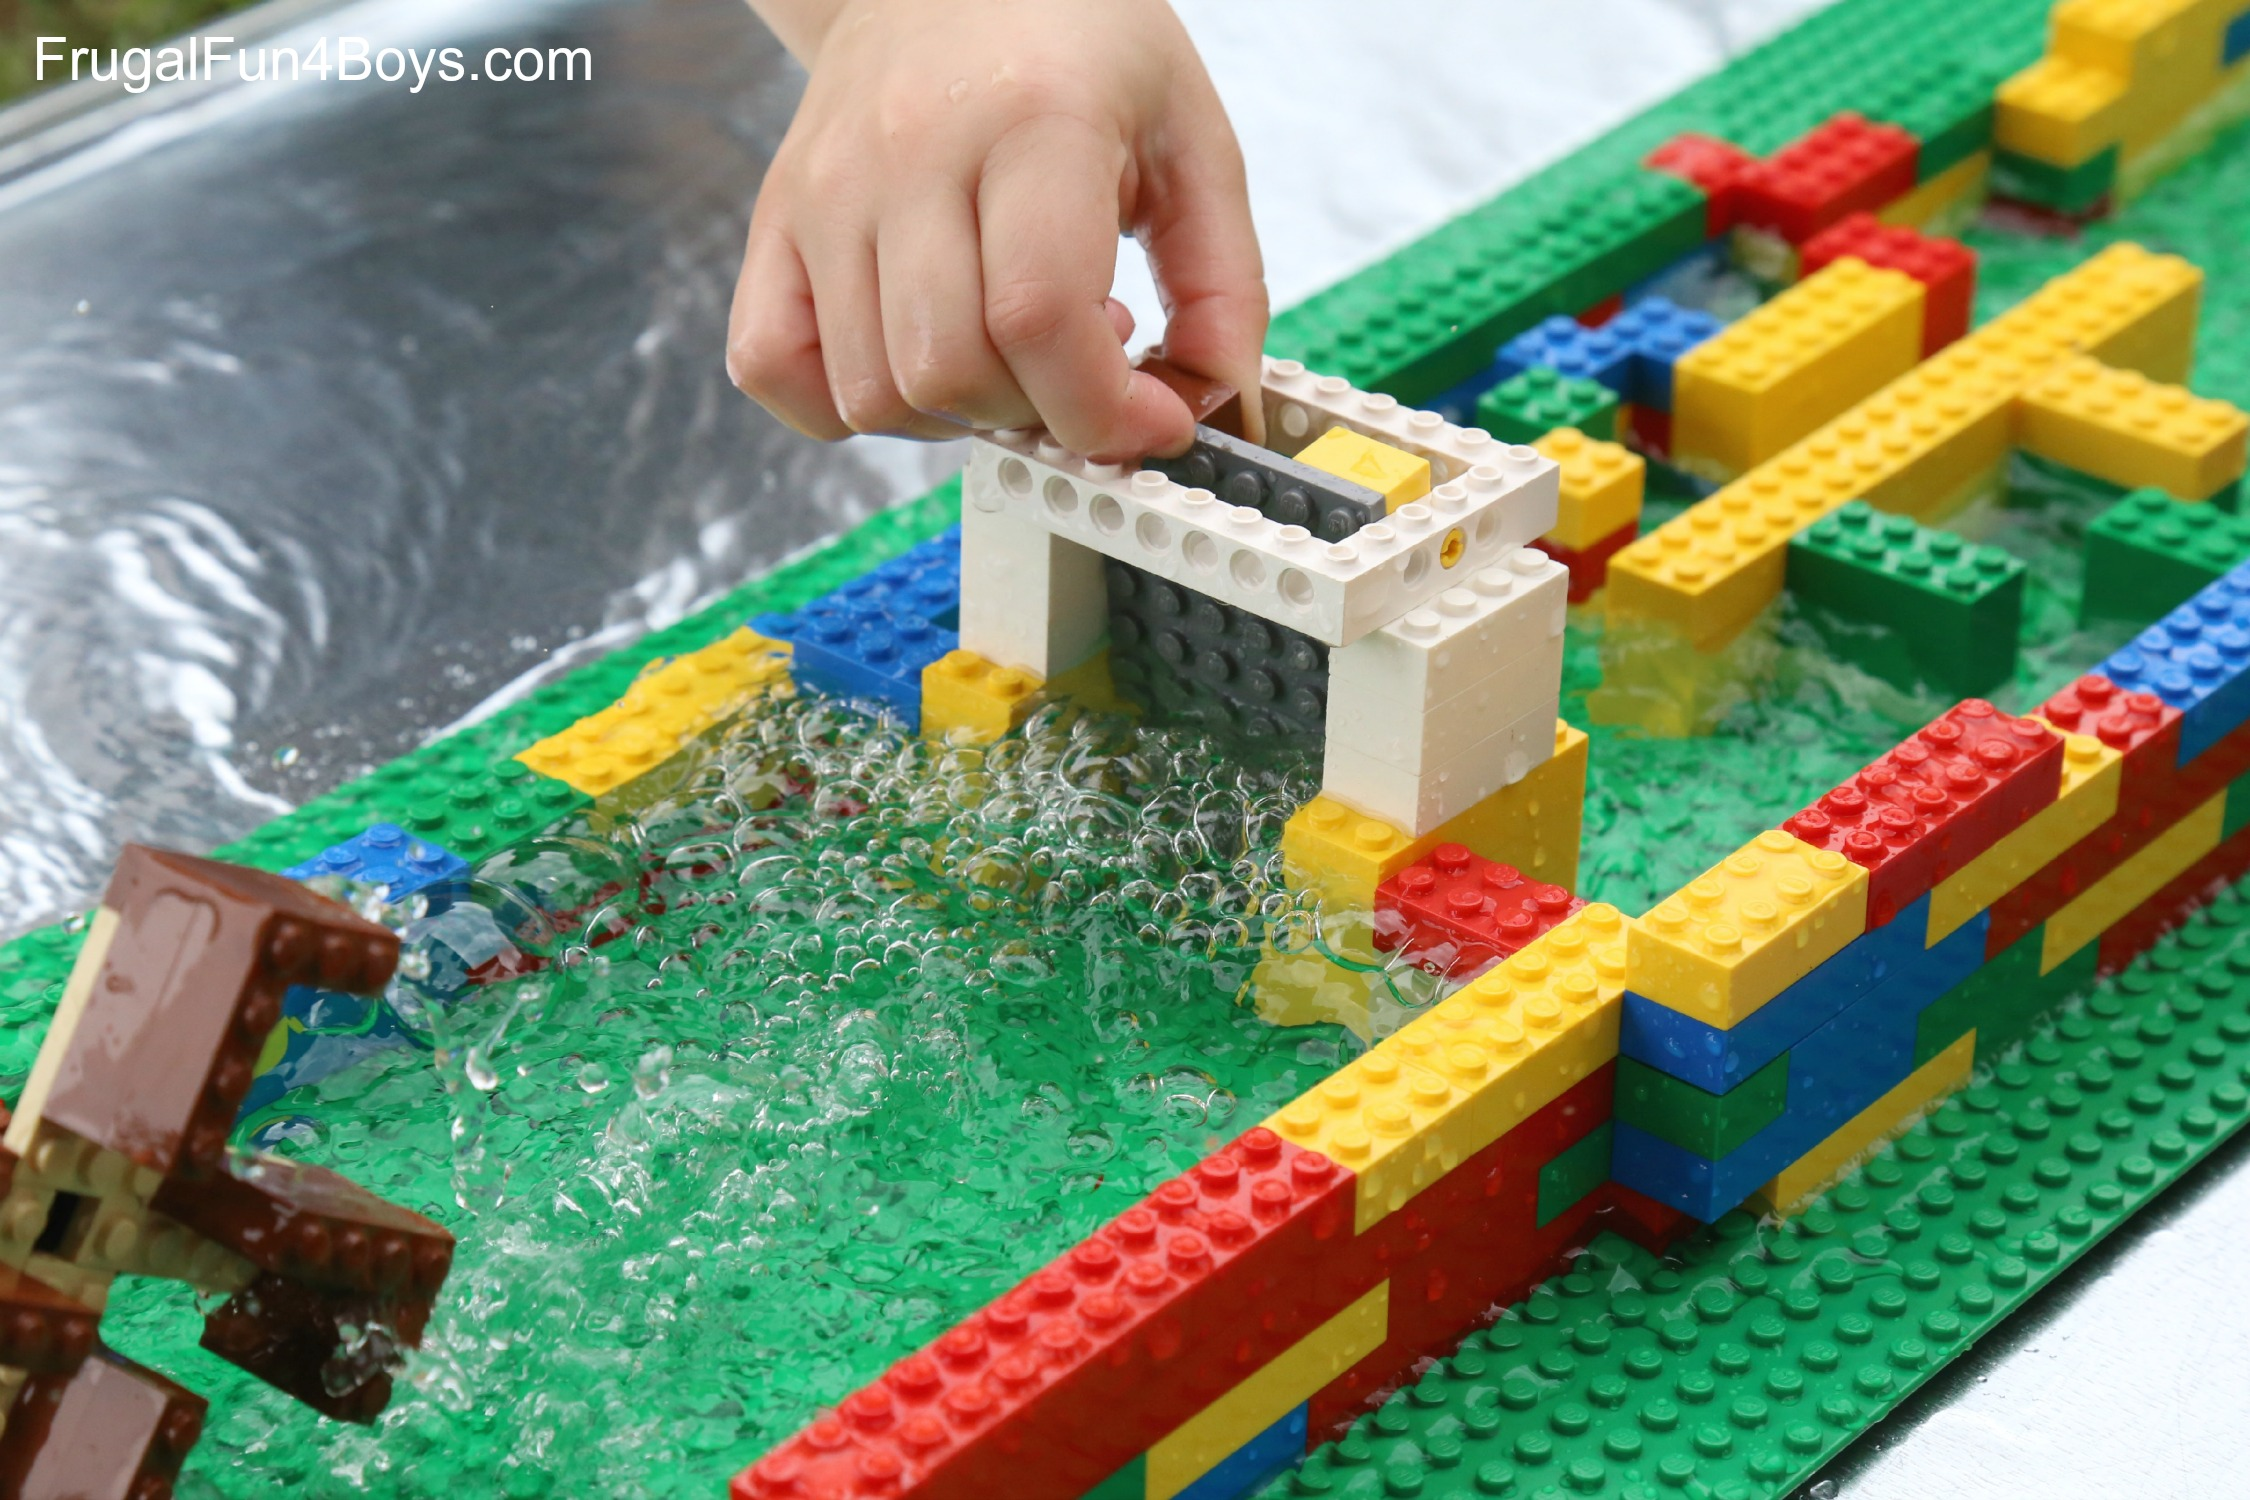 Engineering for Kids  Build a LEGO Water Wheel     Frugal Fun For Boys     Engineering for Kids  Build a LEGO Water Wheel